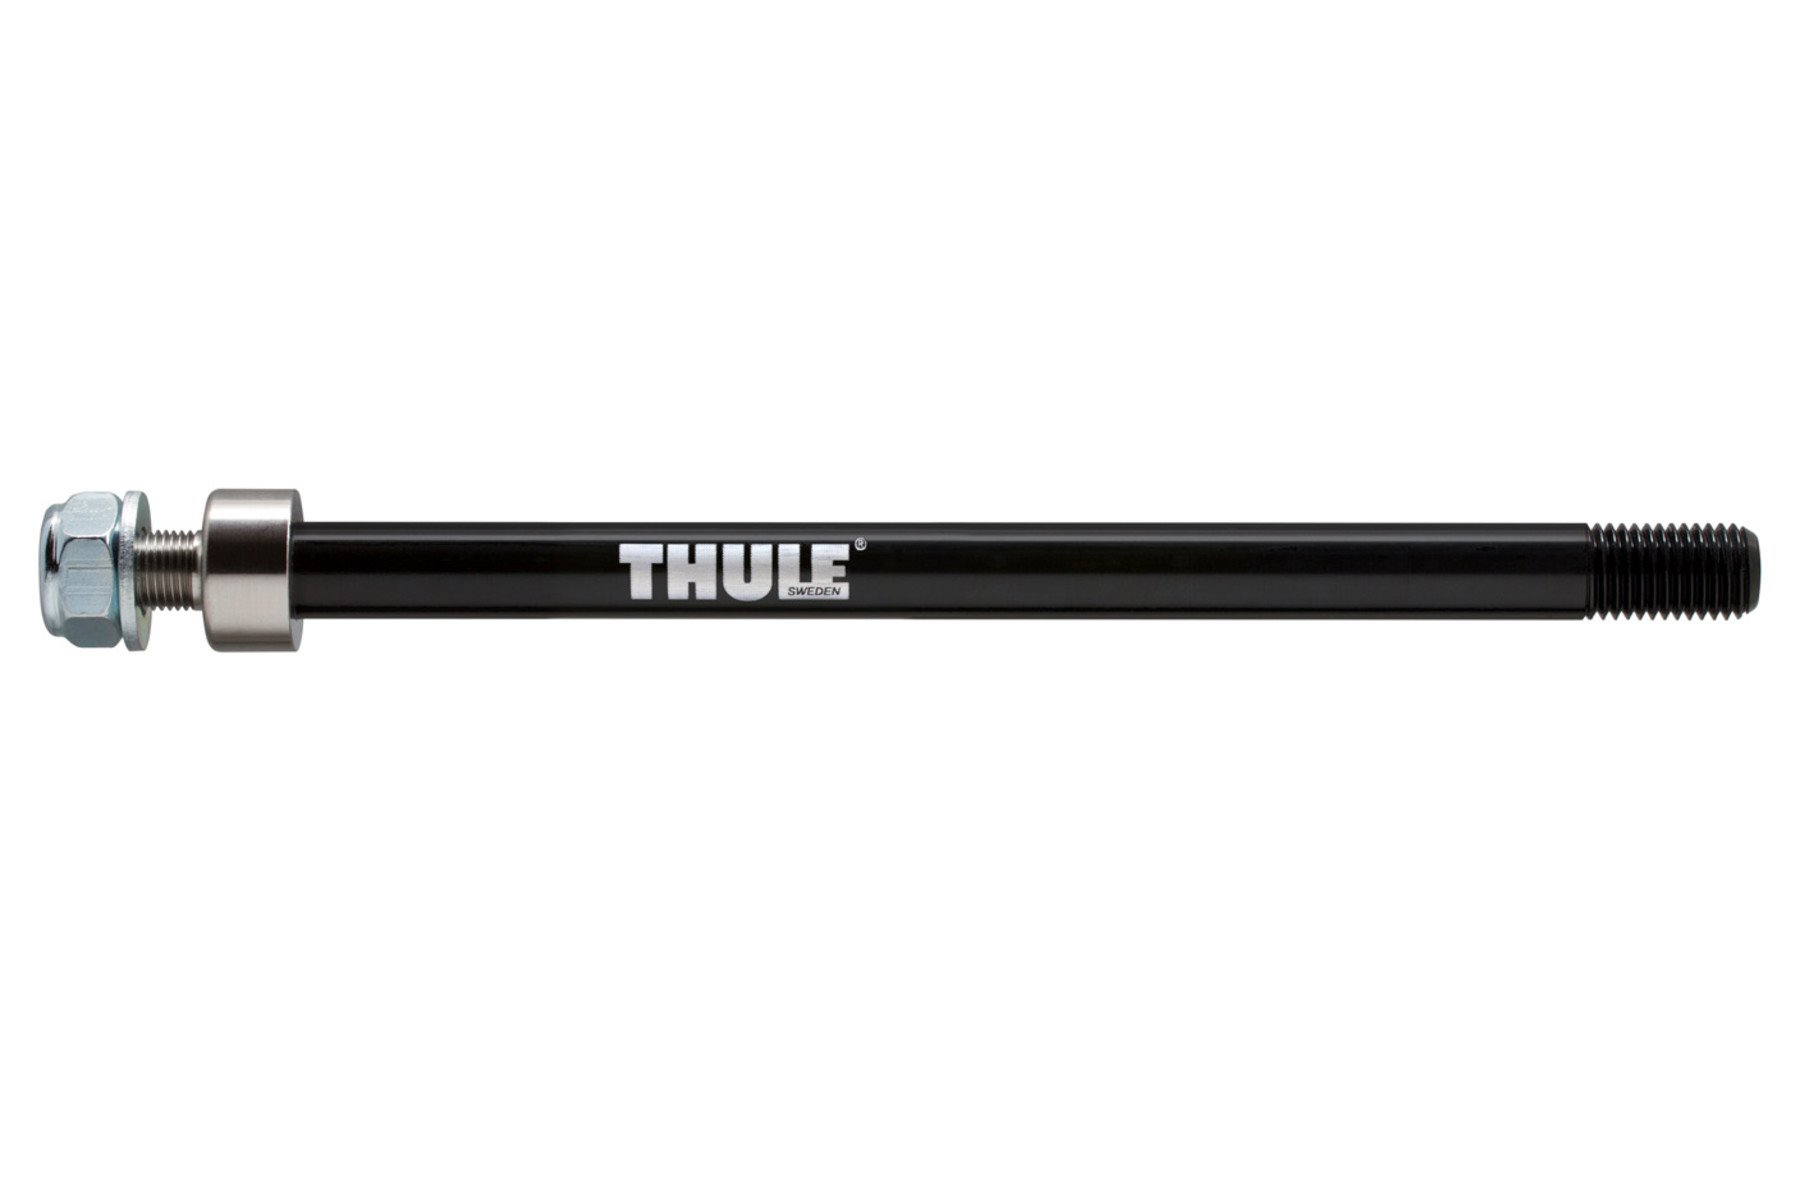 THULE SYNTACE X 12 AXLE ADAPTER M12X1 0 217   229 mm